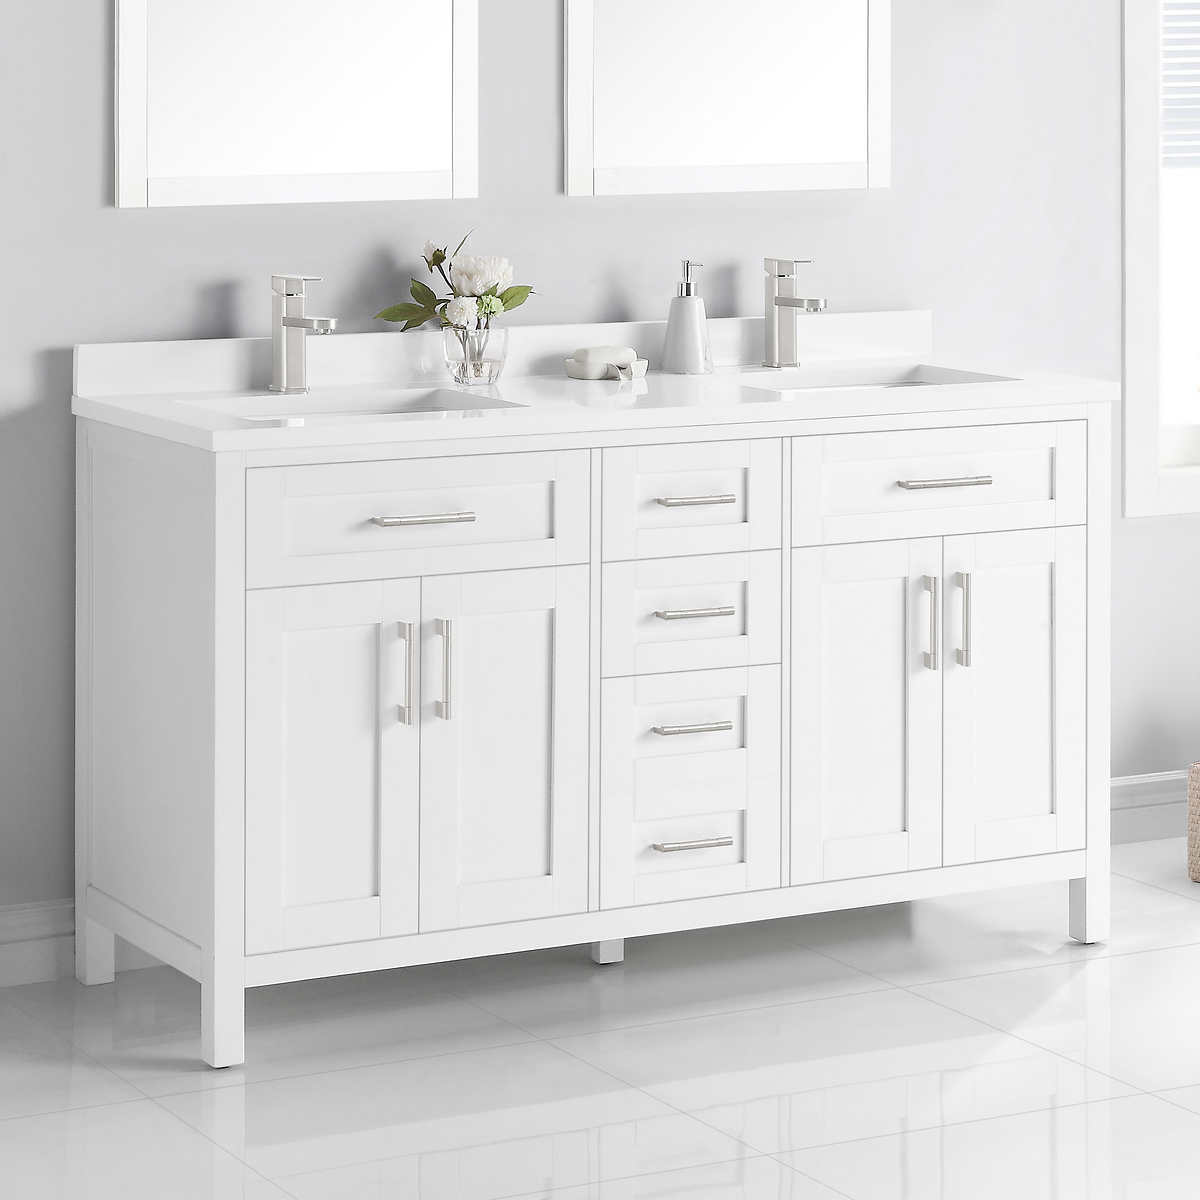 Ove Decors Lakeview 60 Vanity